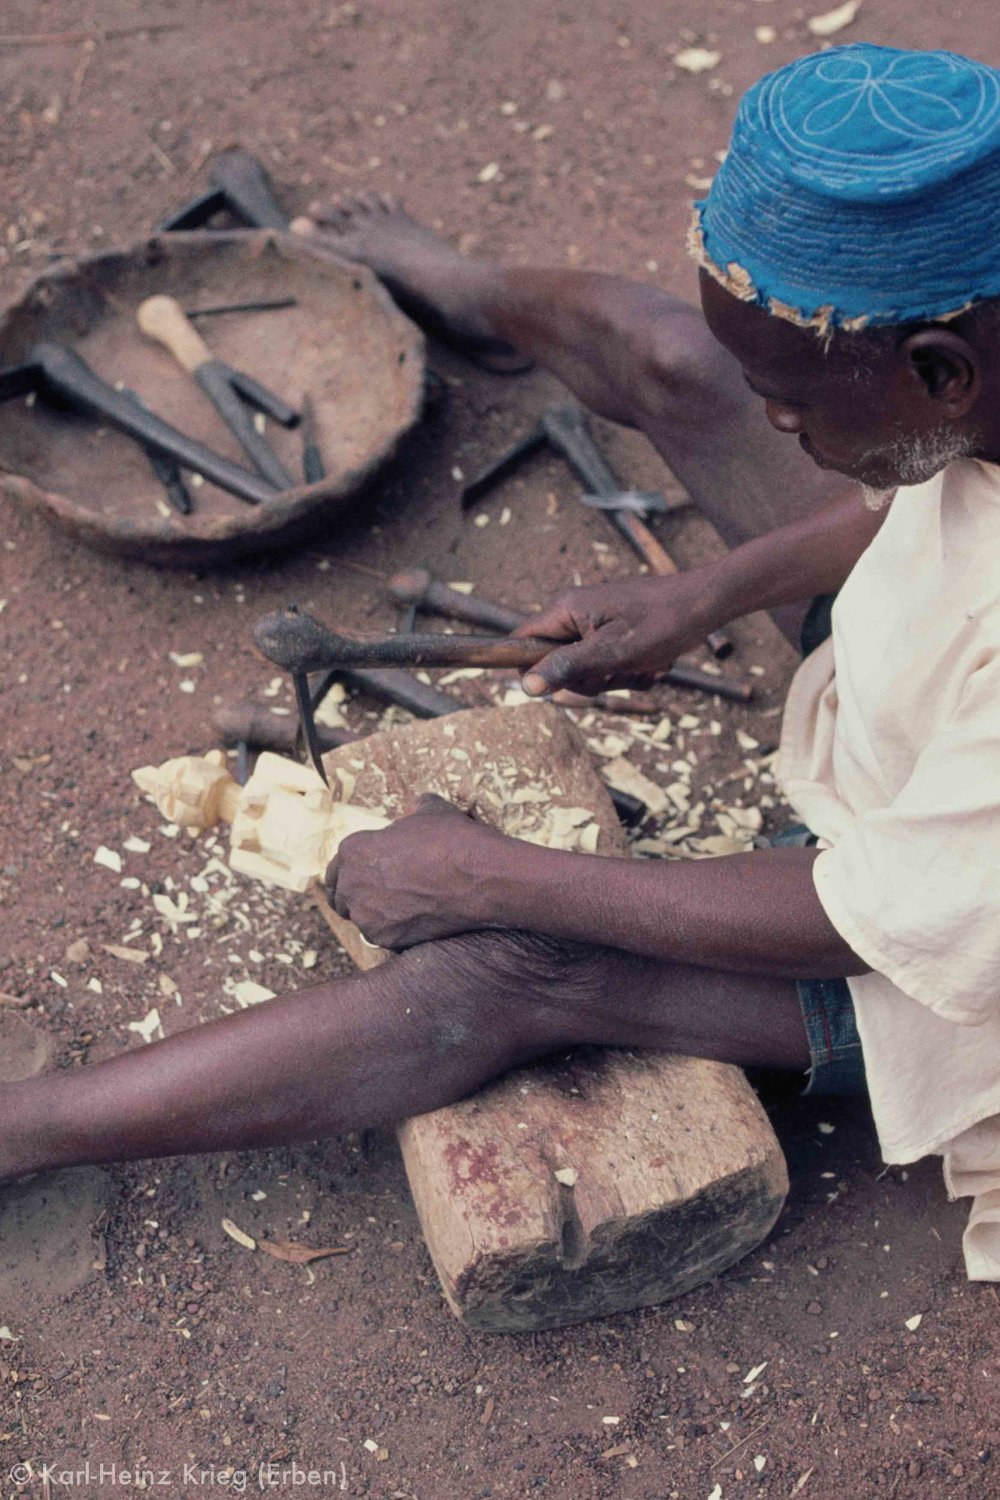 Songuifolo Silué uses his traditional carving tools to carve a small figure from freshly cut wood. Photo: Karl-Heinz Krieg, Sirasso (Region of Boundiali, Côte d'Ivoire), 1978